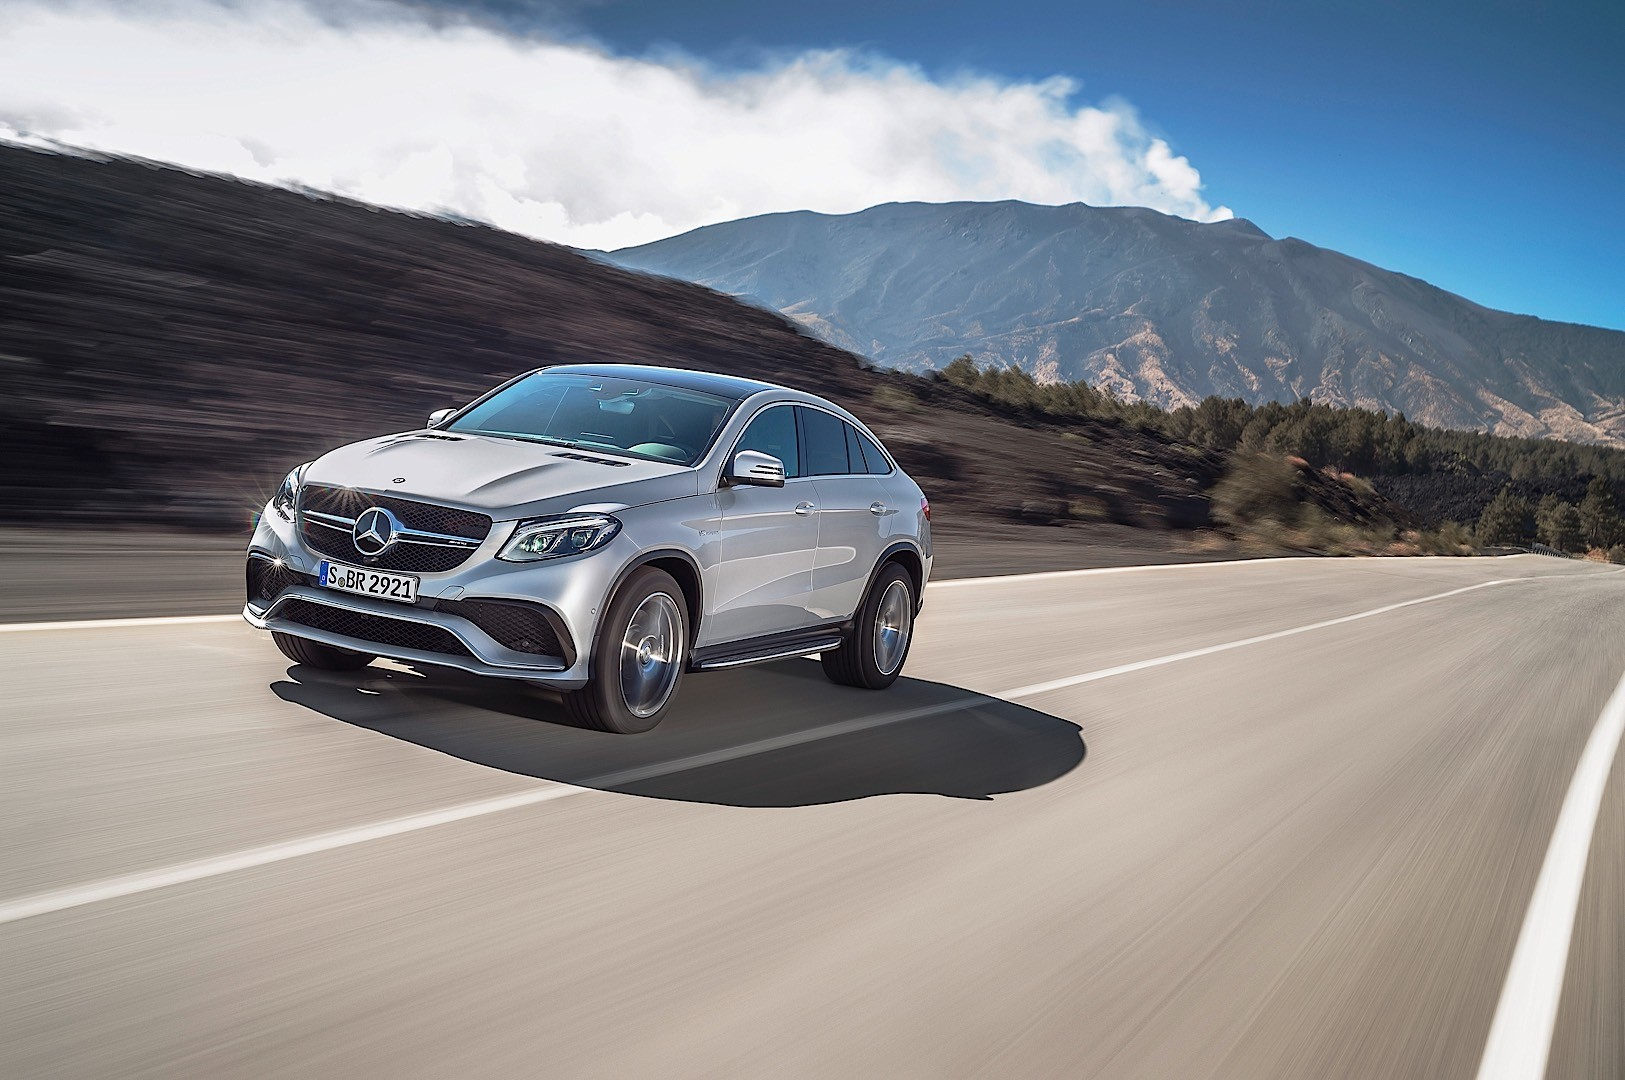 gle mercedes coupe amg benz gle63 c292 v8 carwitter hp unveils biturbo front coupe reveals road autoevolution release unleashed 4matic